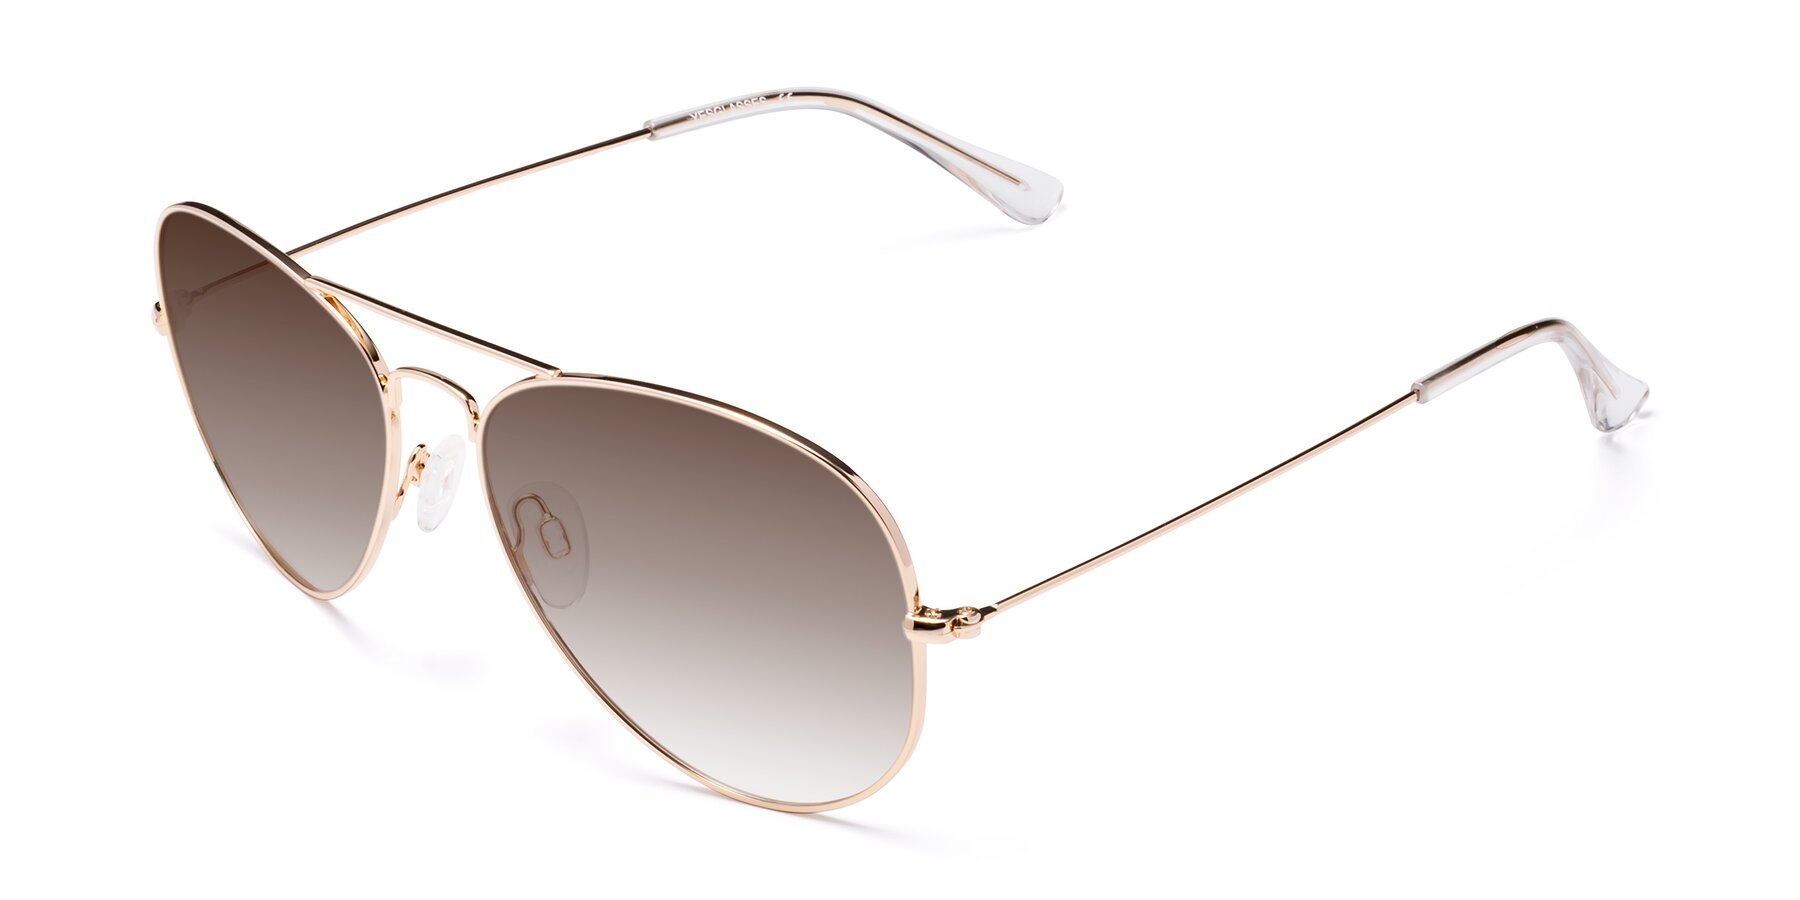 Angle of SSR035 in Shiny Gold with Brown Gradient Lenses